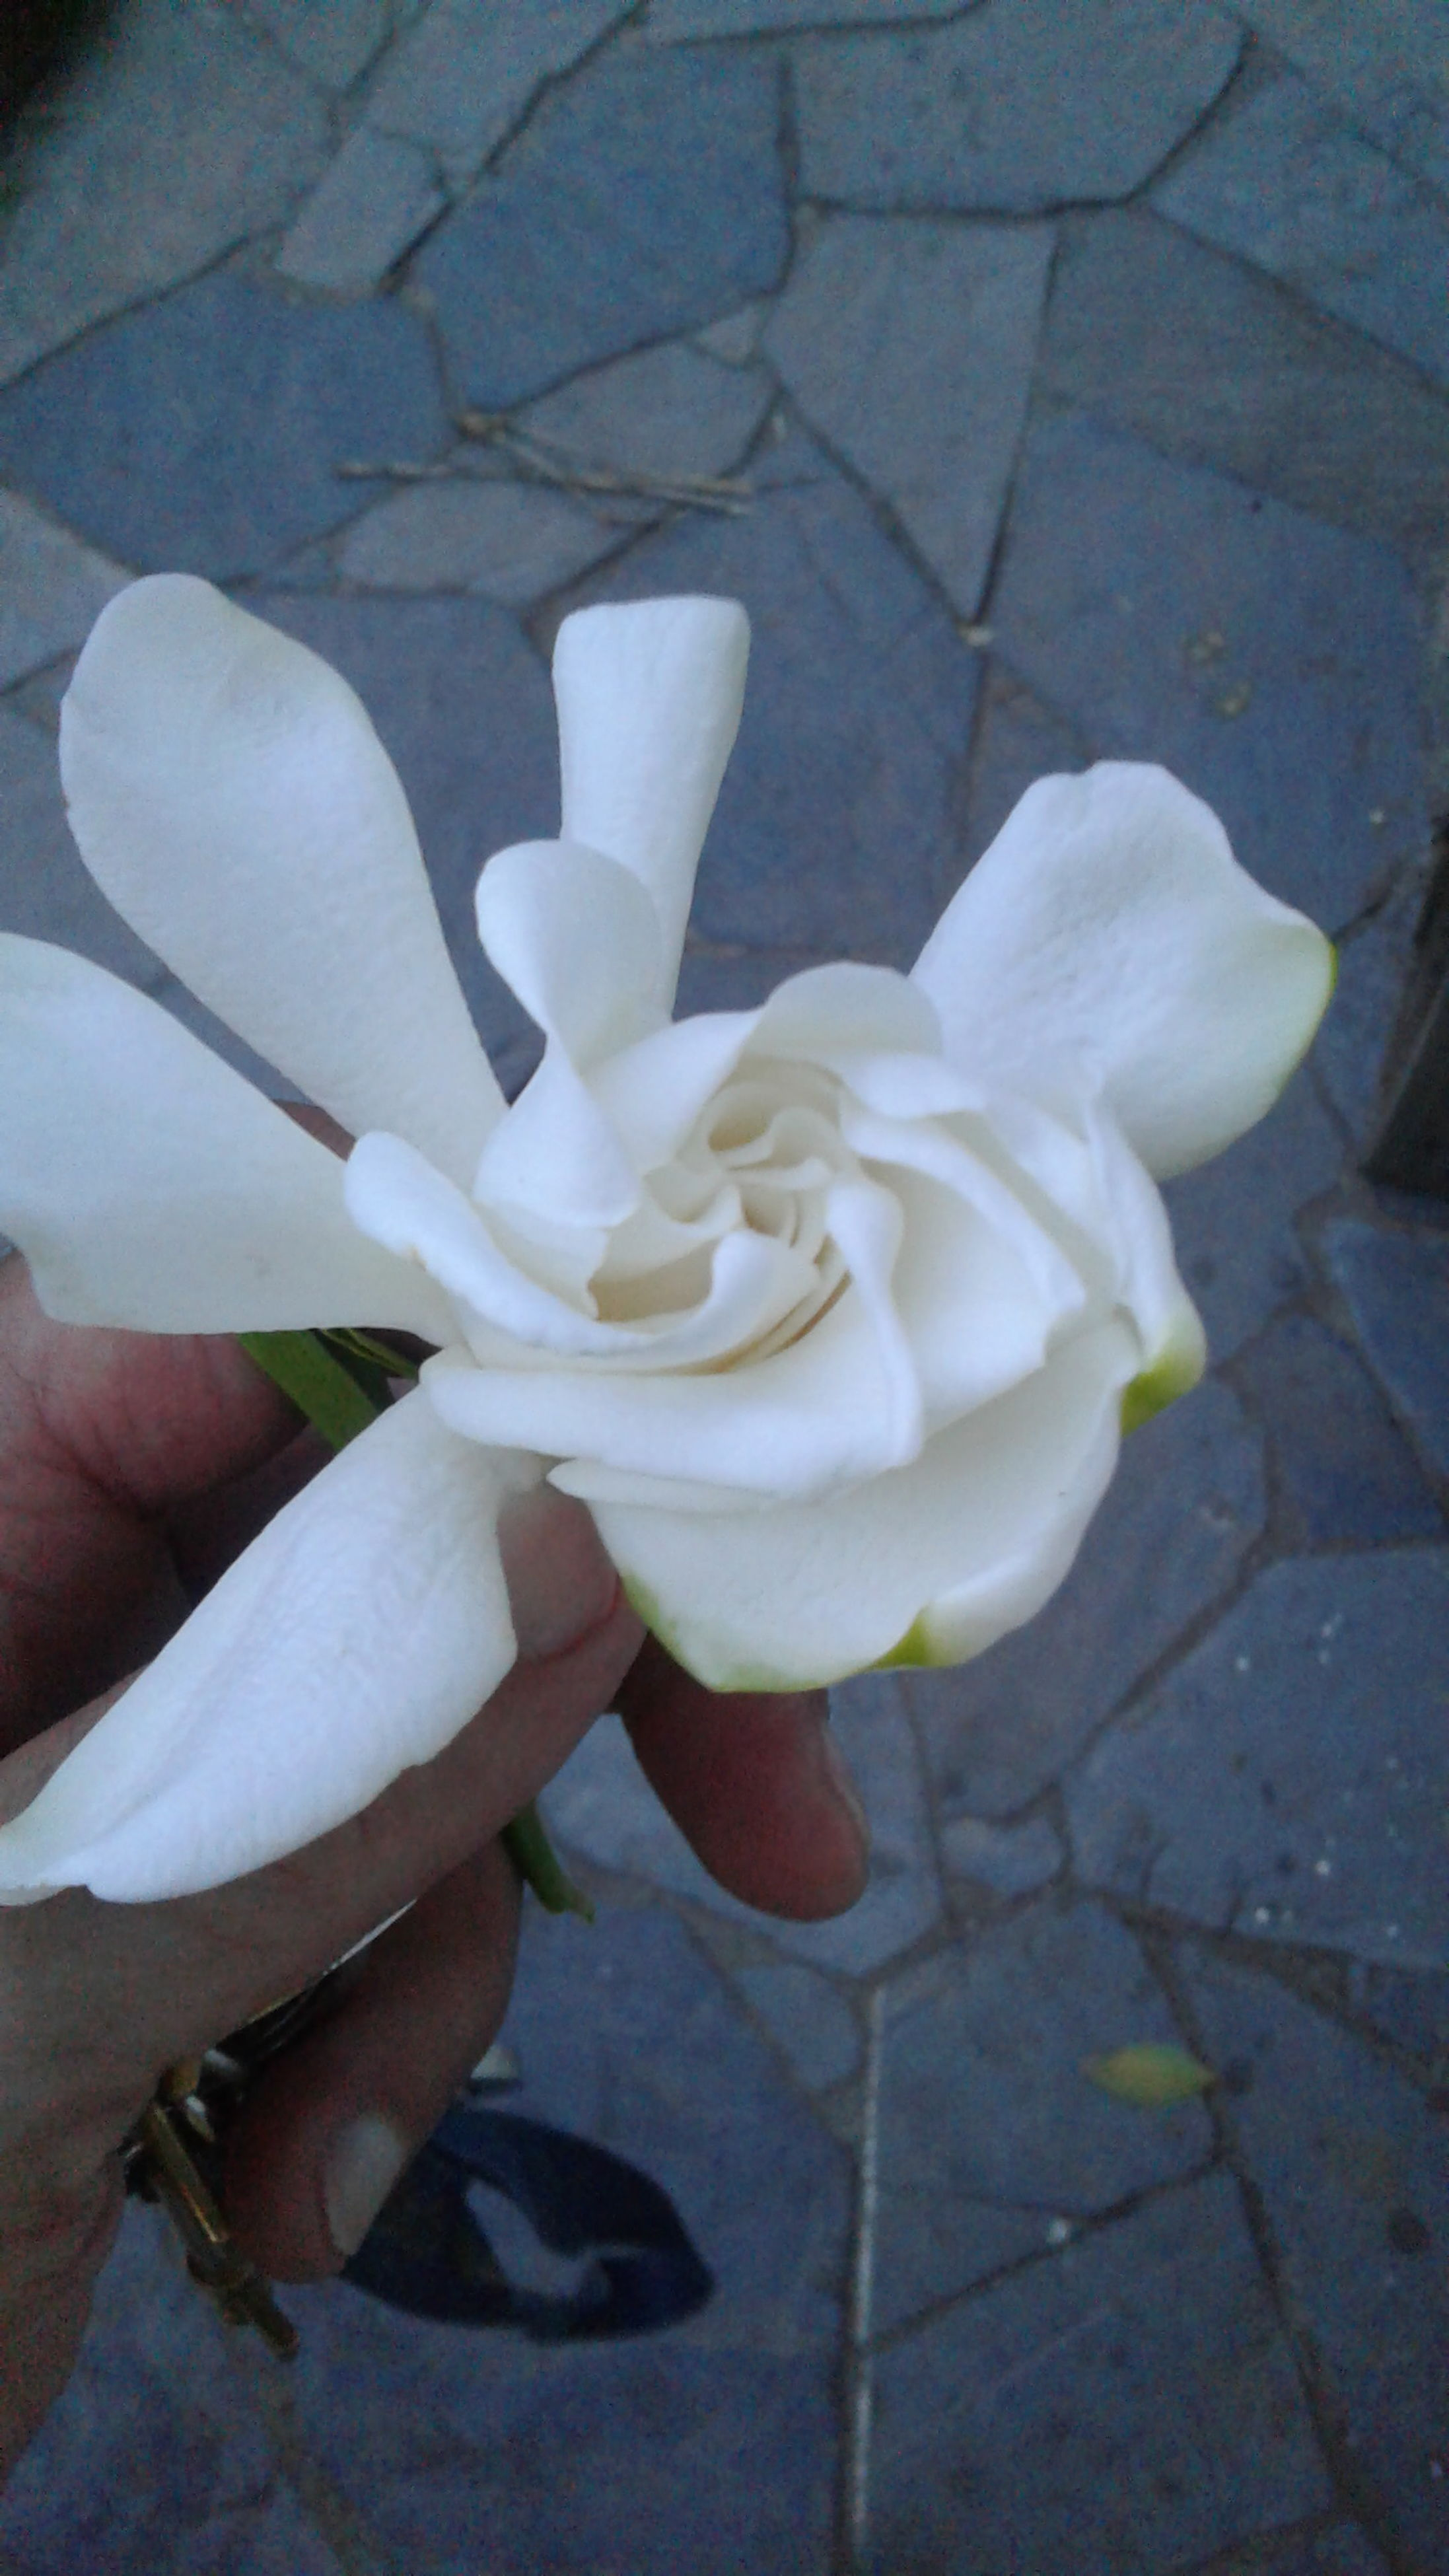 real people, white color, human hand, one person, holding, day, human body part, flower, outdoors, close-up, freshness, nature, low section, flower head